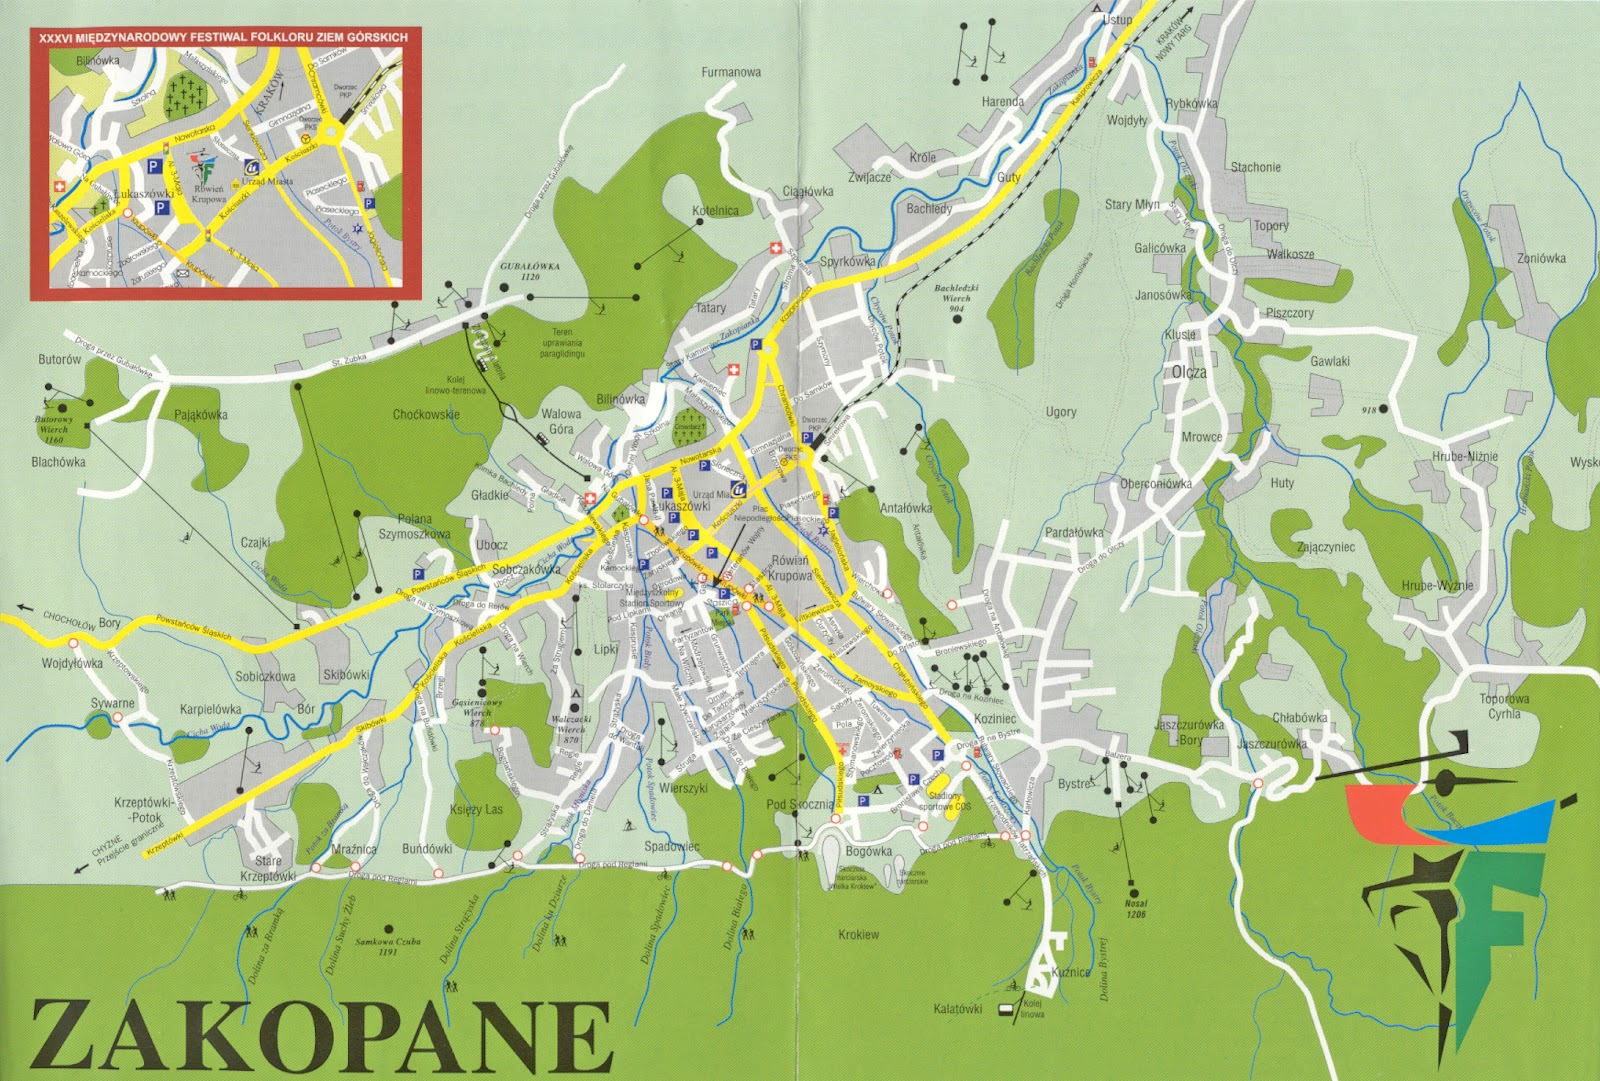 Seoul tv channel: Map of Zakopane, Poland